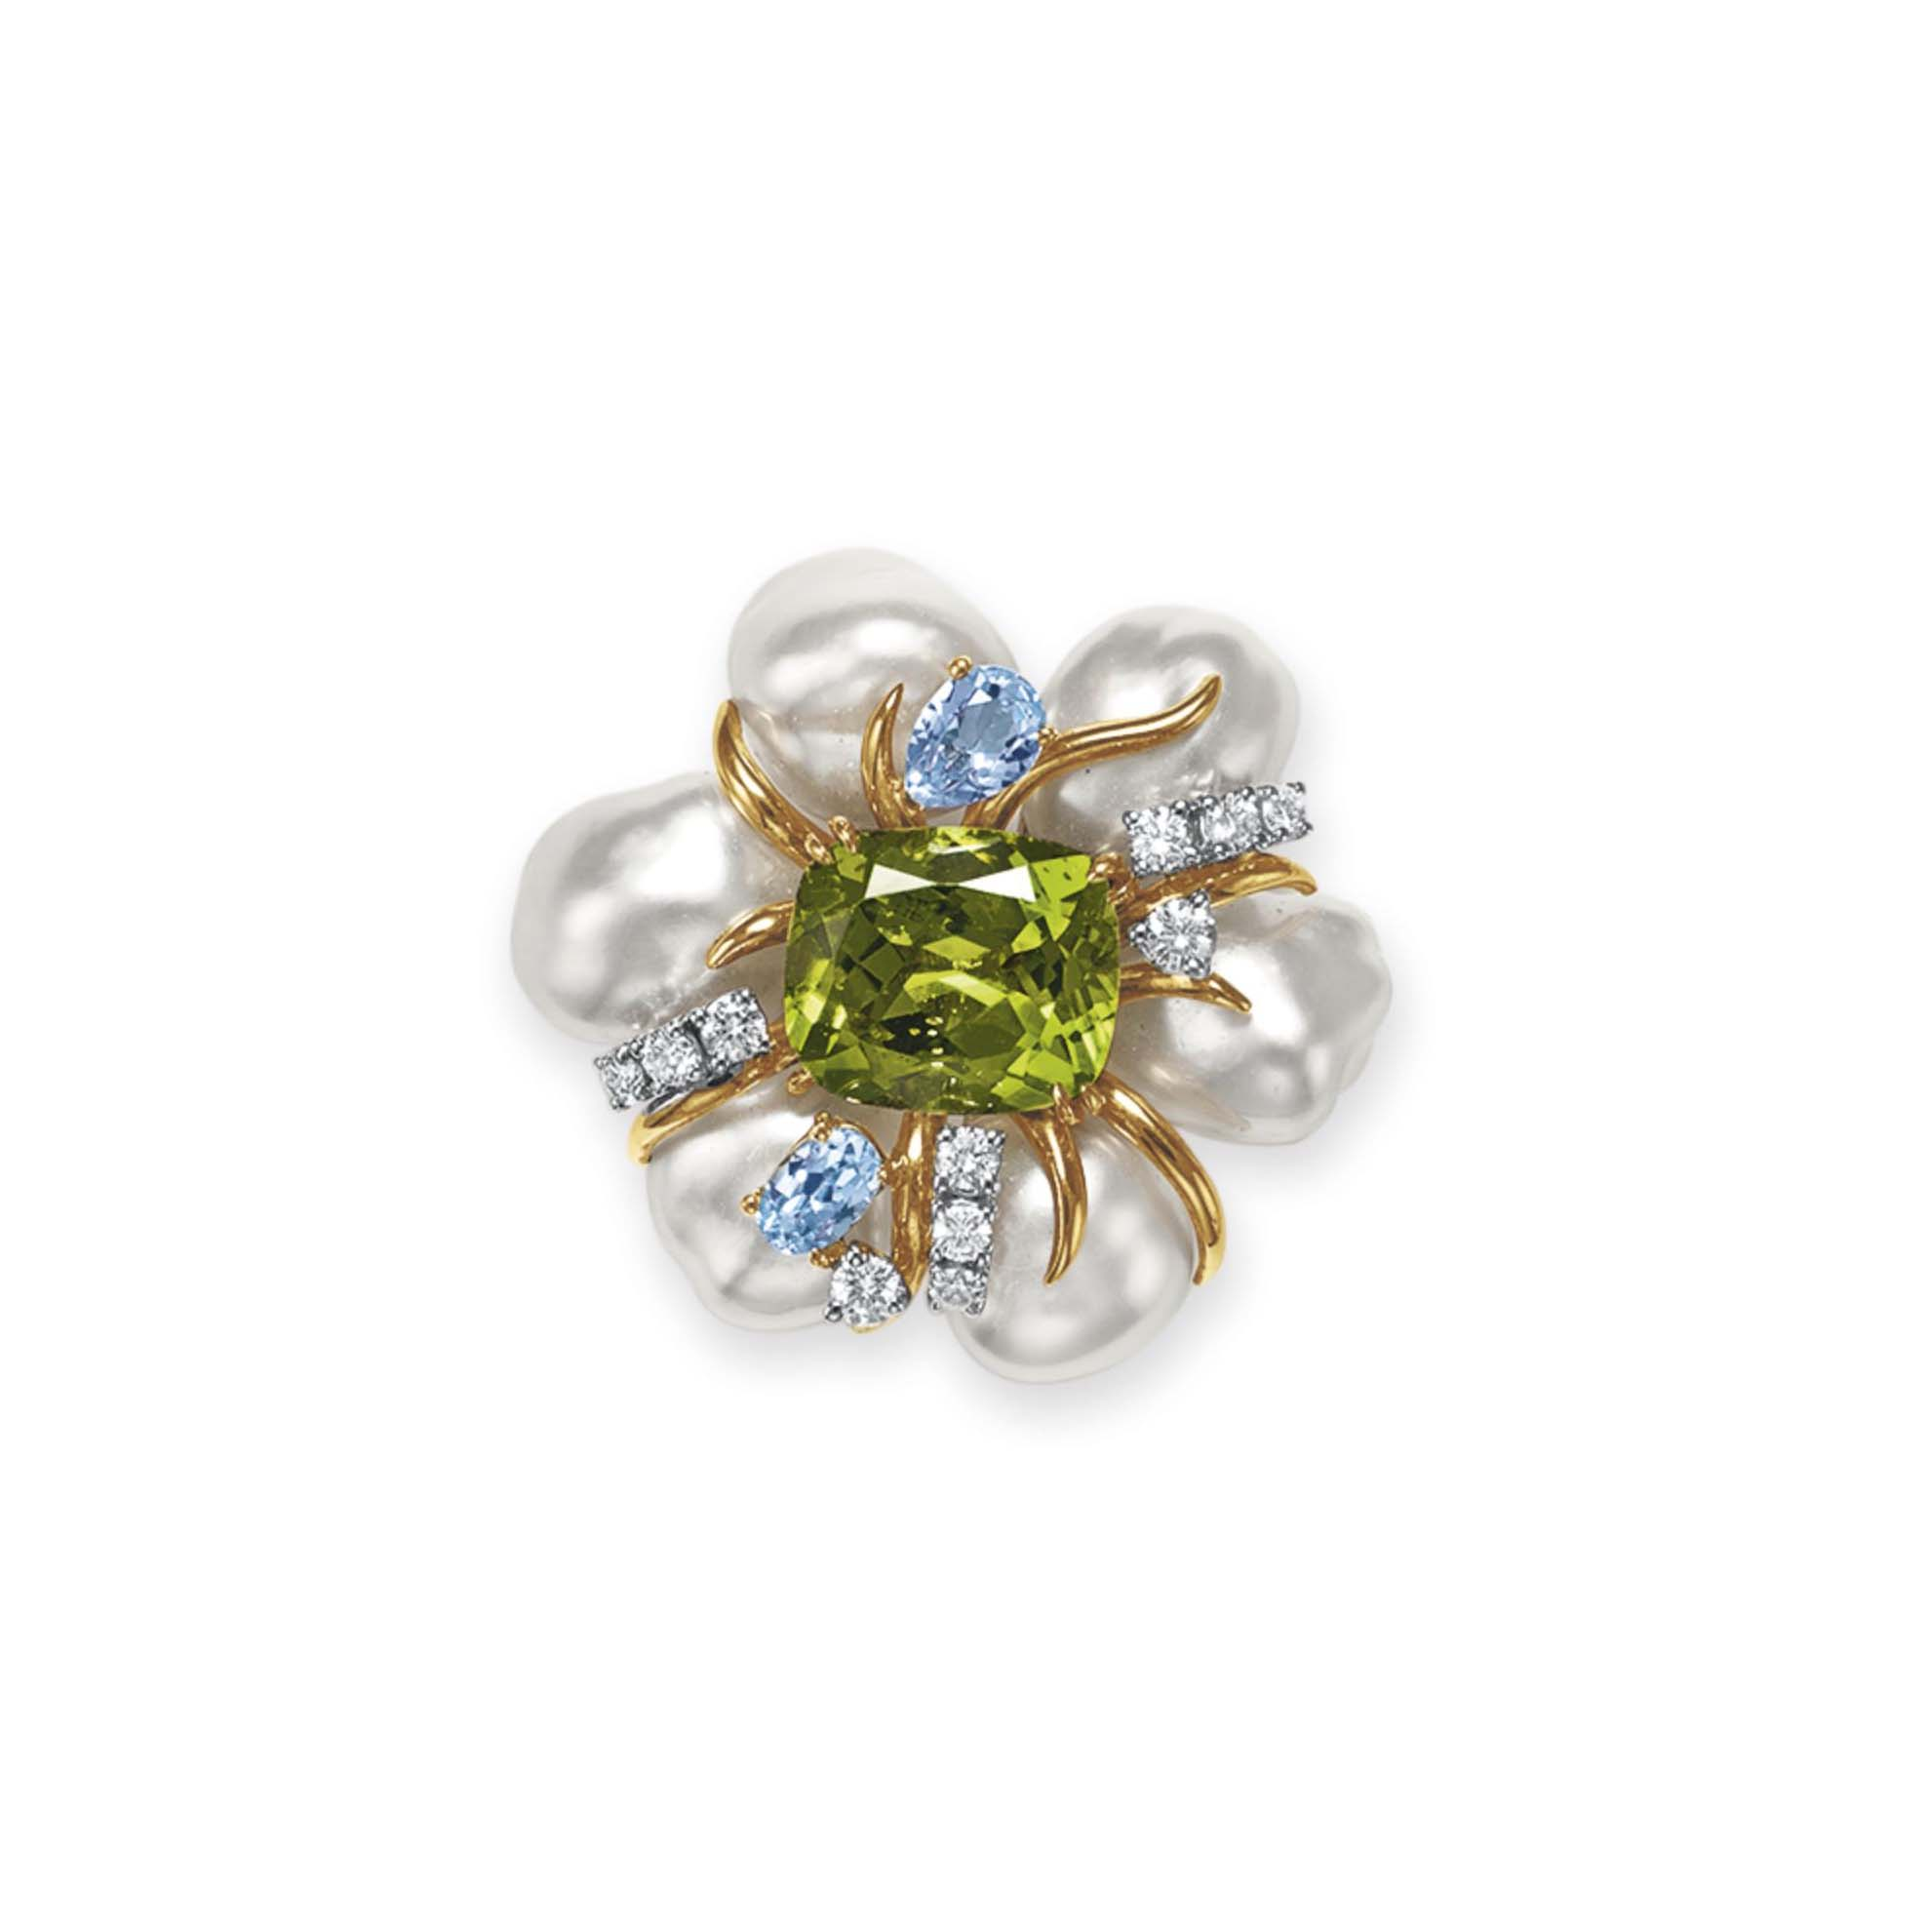 A PERIDOT, CULTURED PEARL AND